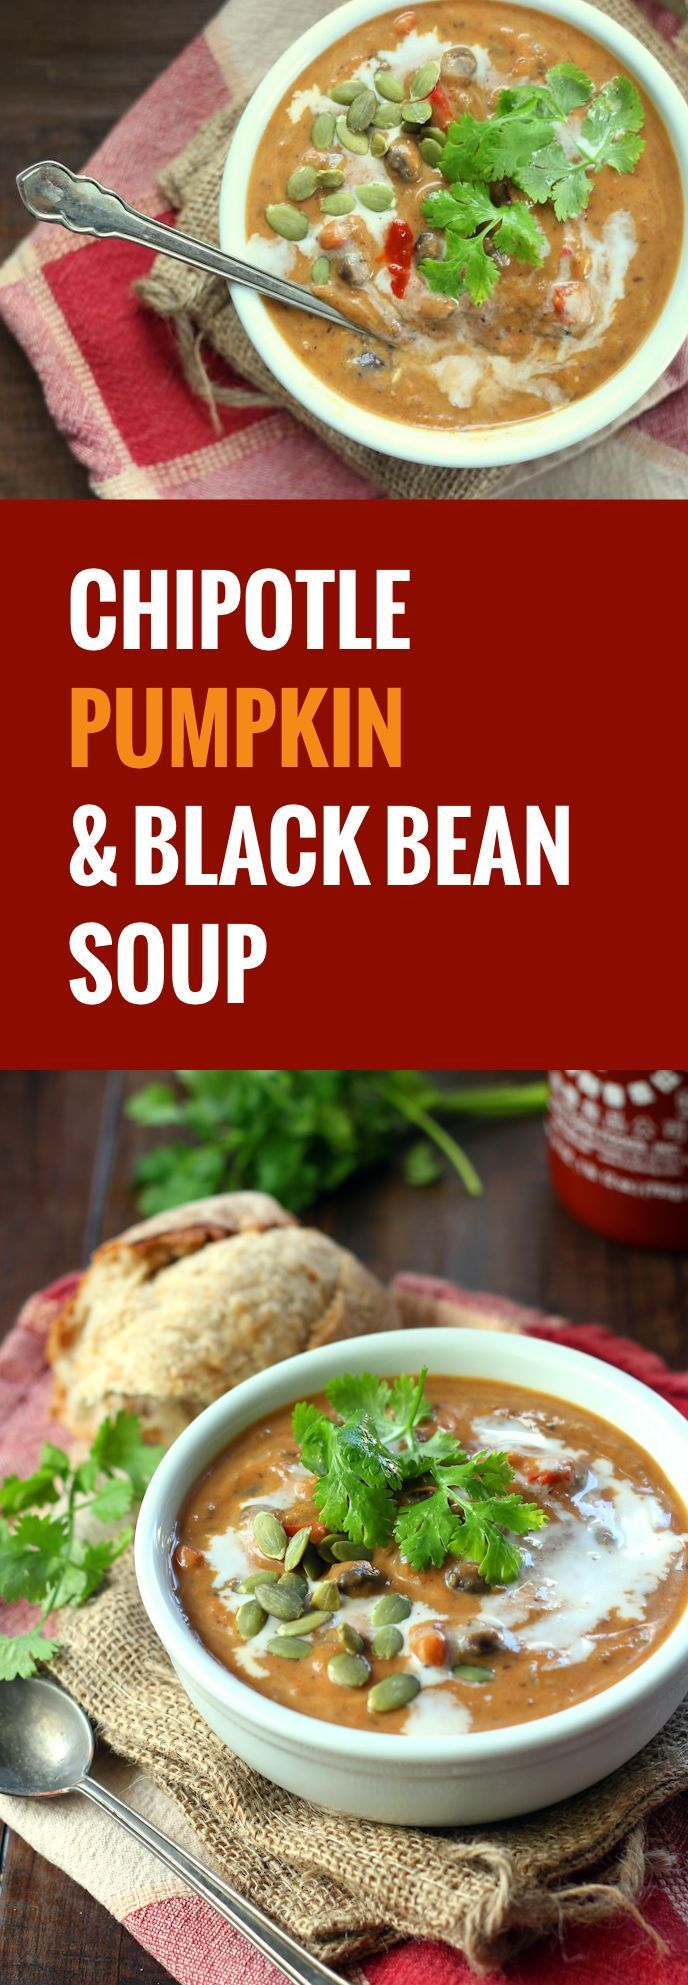 Black Bean Soup on Pinterest | Black bean chili, Healthy black bean ...